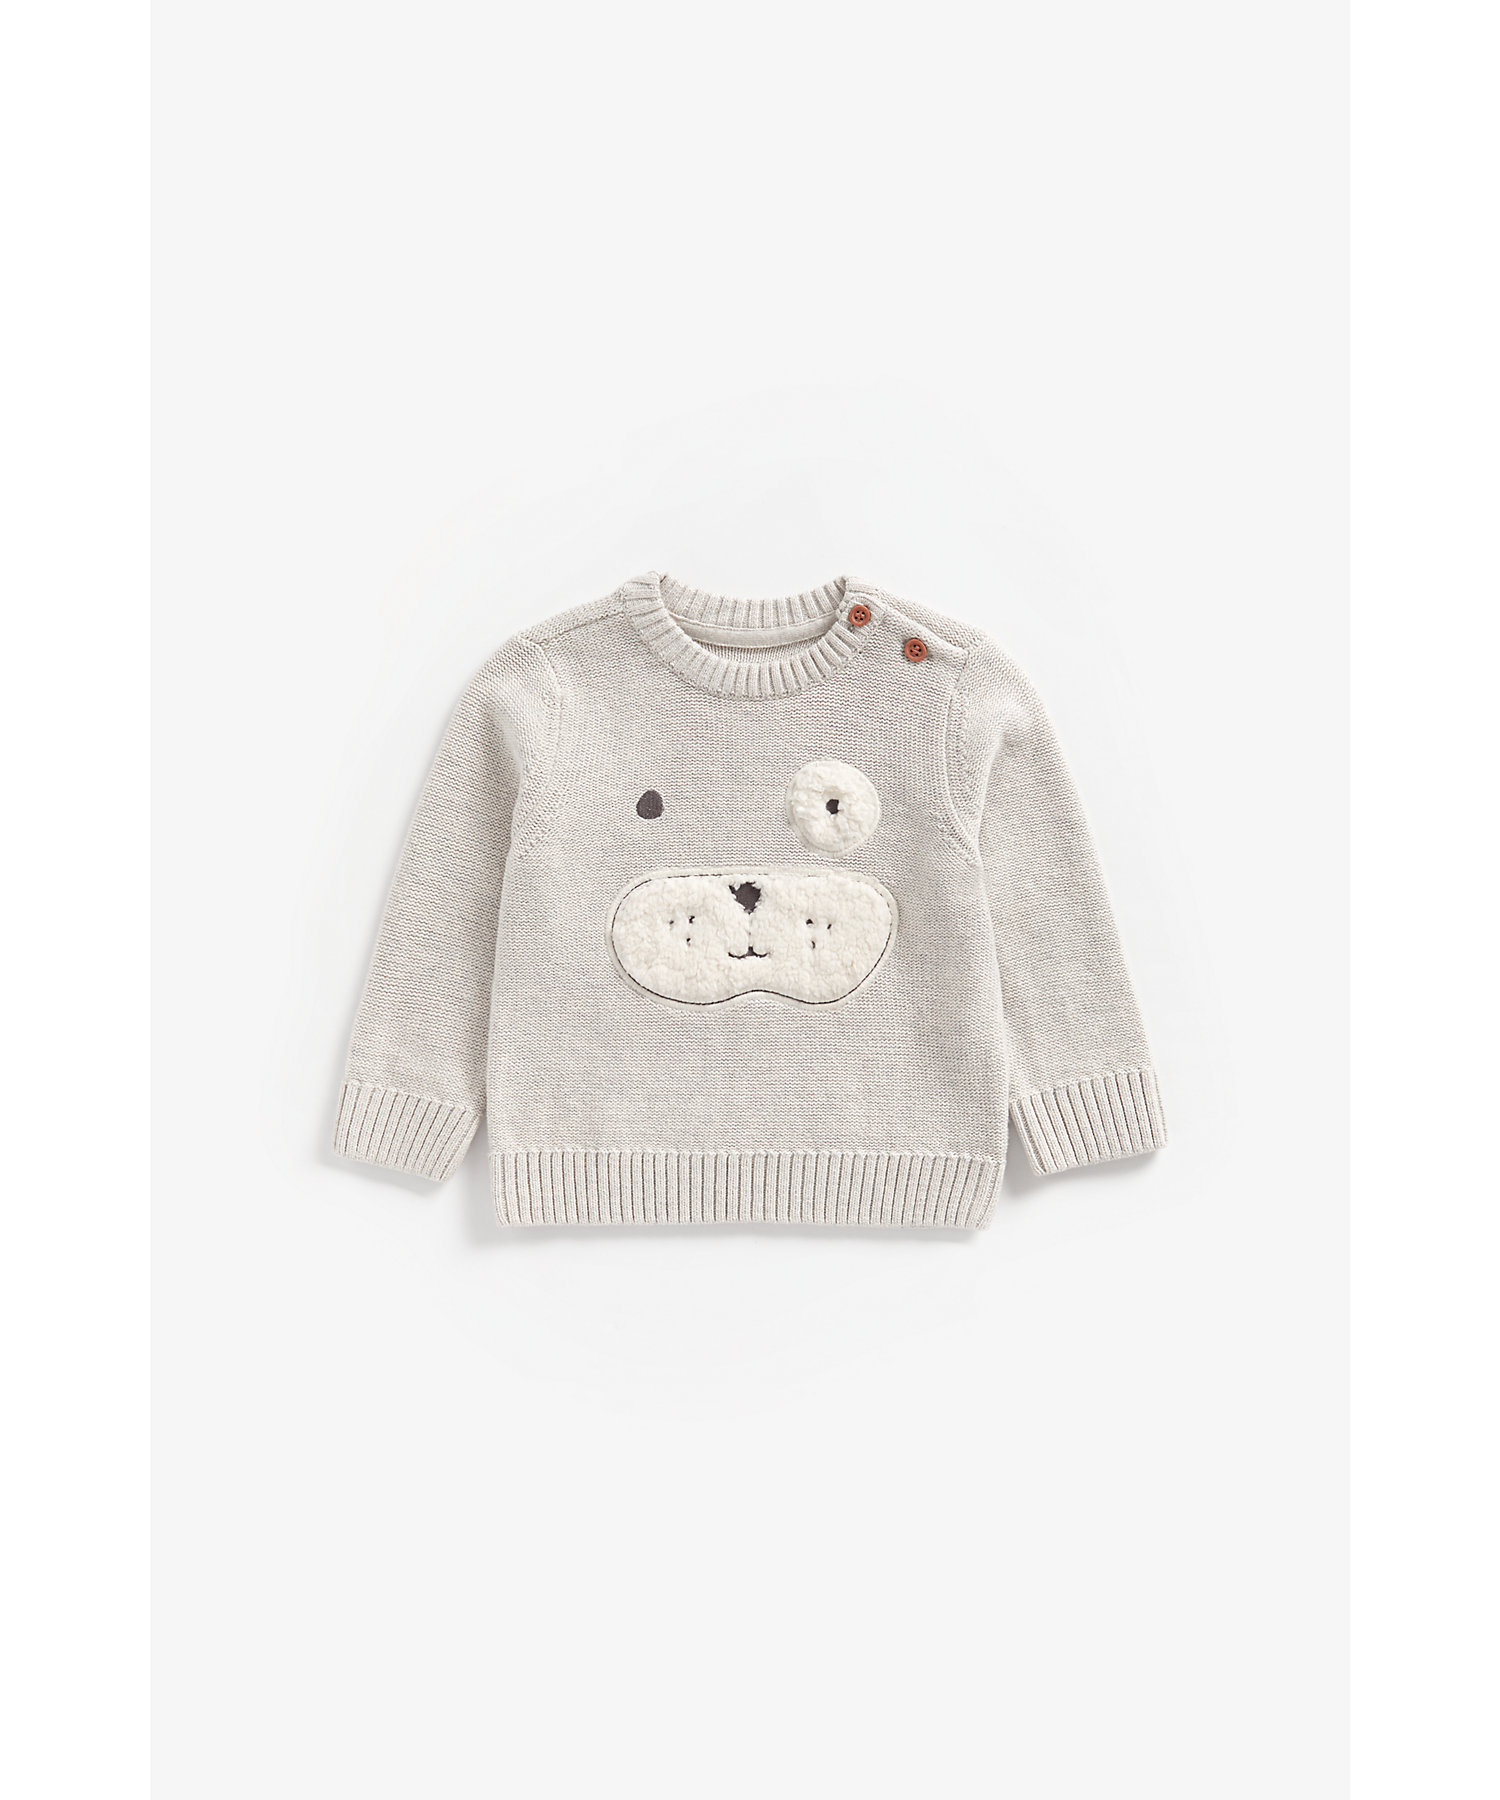 Mothercare | Boys Full Sleeves Sweater Puppy Patchwork - Grey